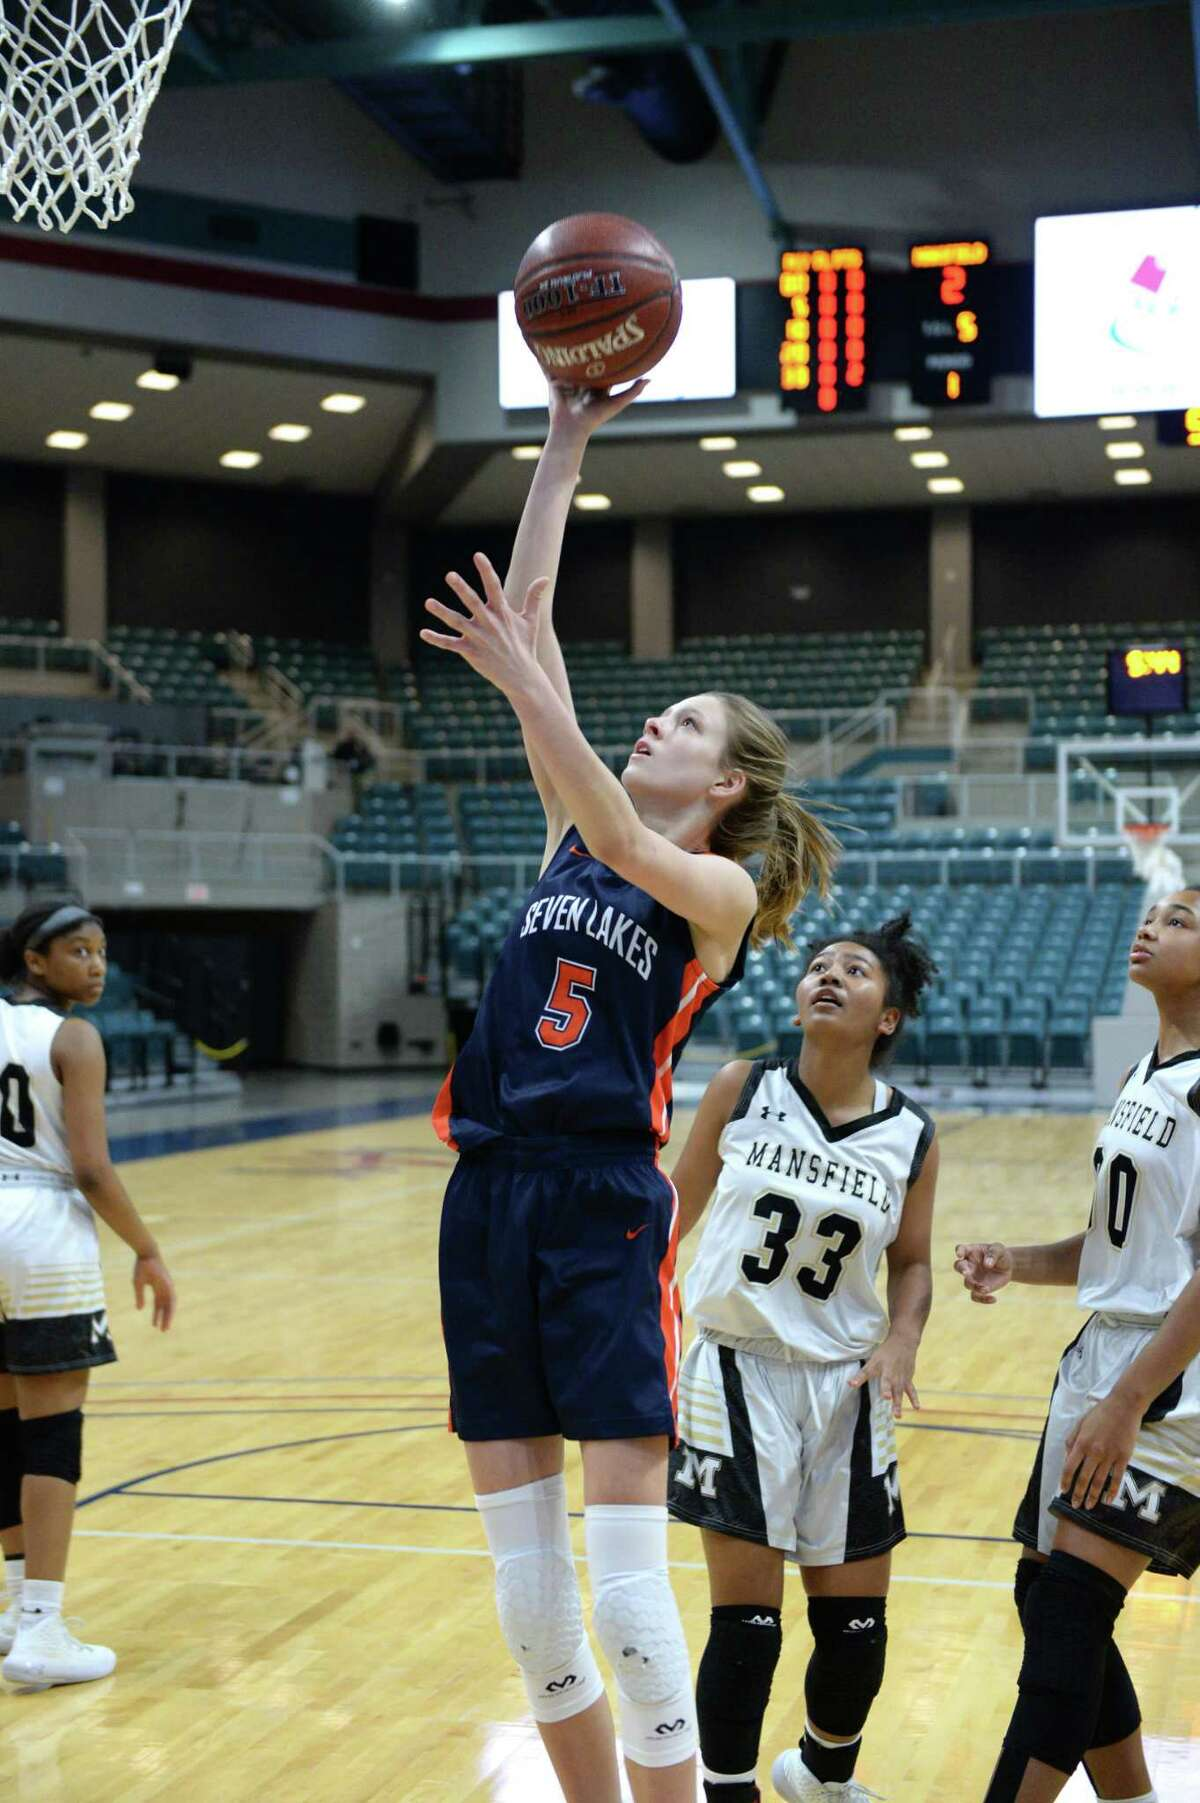 Lily Baumgardner (5) of Seven Lakes floats a shot during the first half of the third place game in the Katy Classic Basketball Tournament between the Seven Lakes Spartans and the Mansfield Tigers on Saturday, December 7, 2019 at the Leonard Merrell Center in Katy, TX.